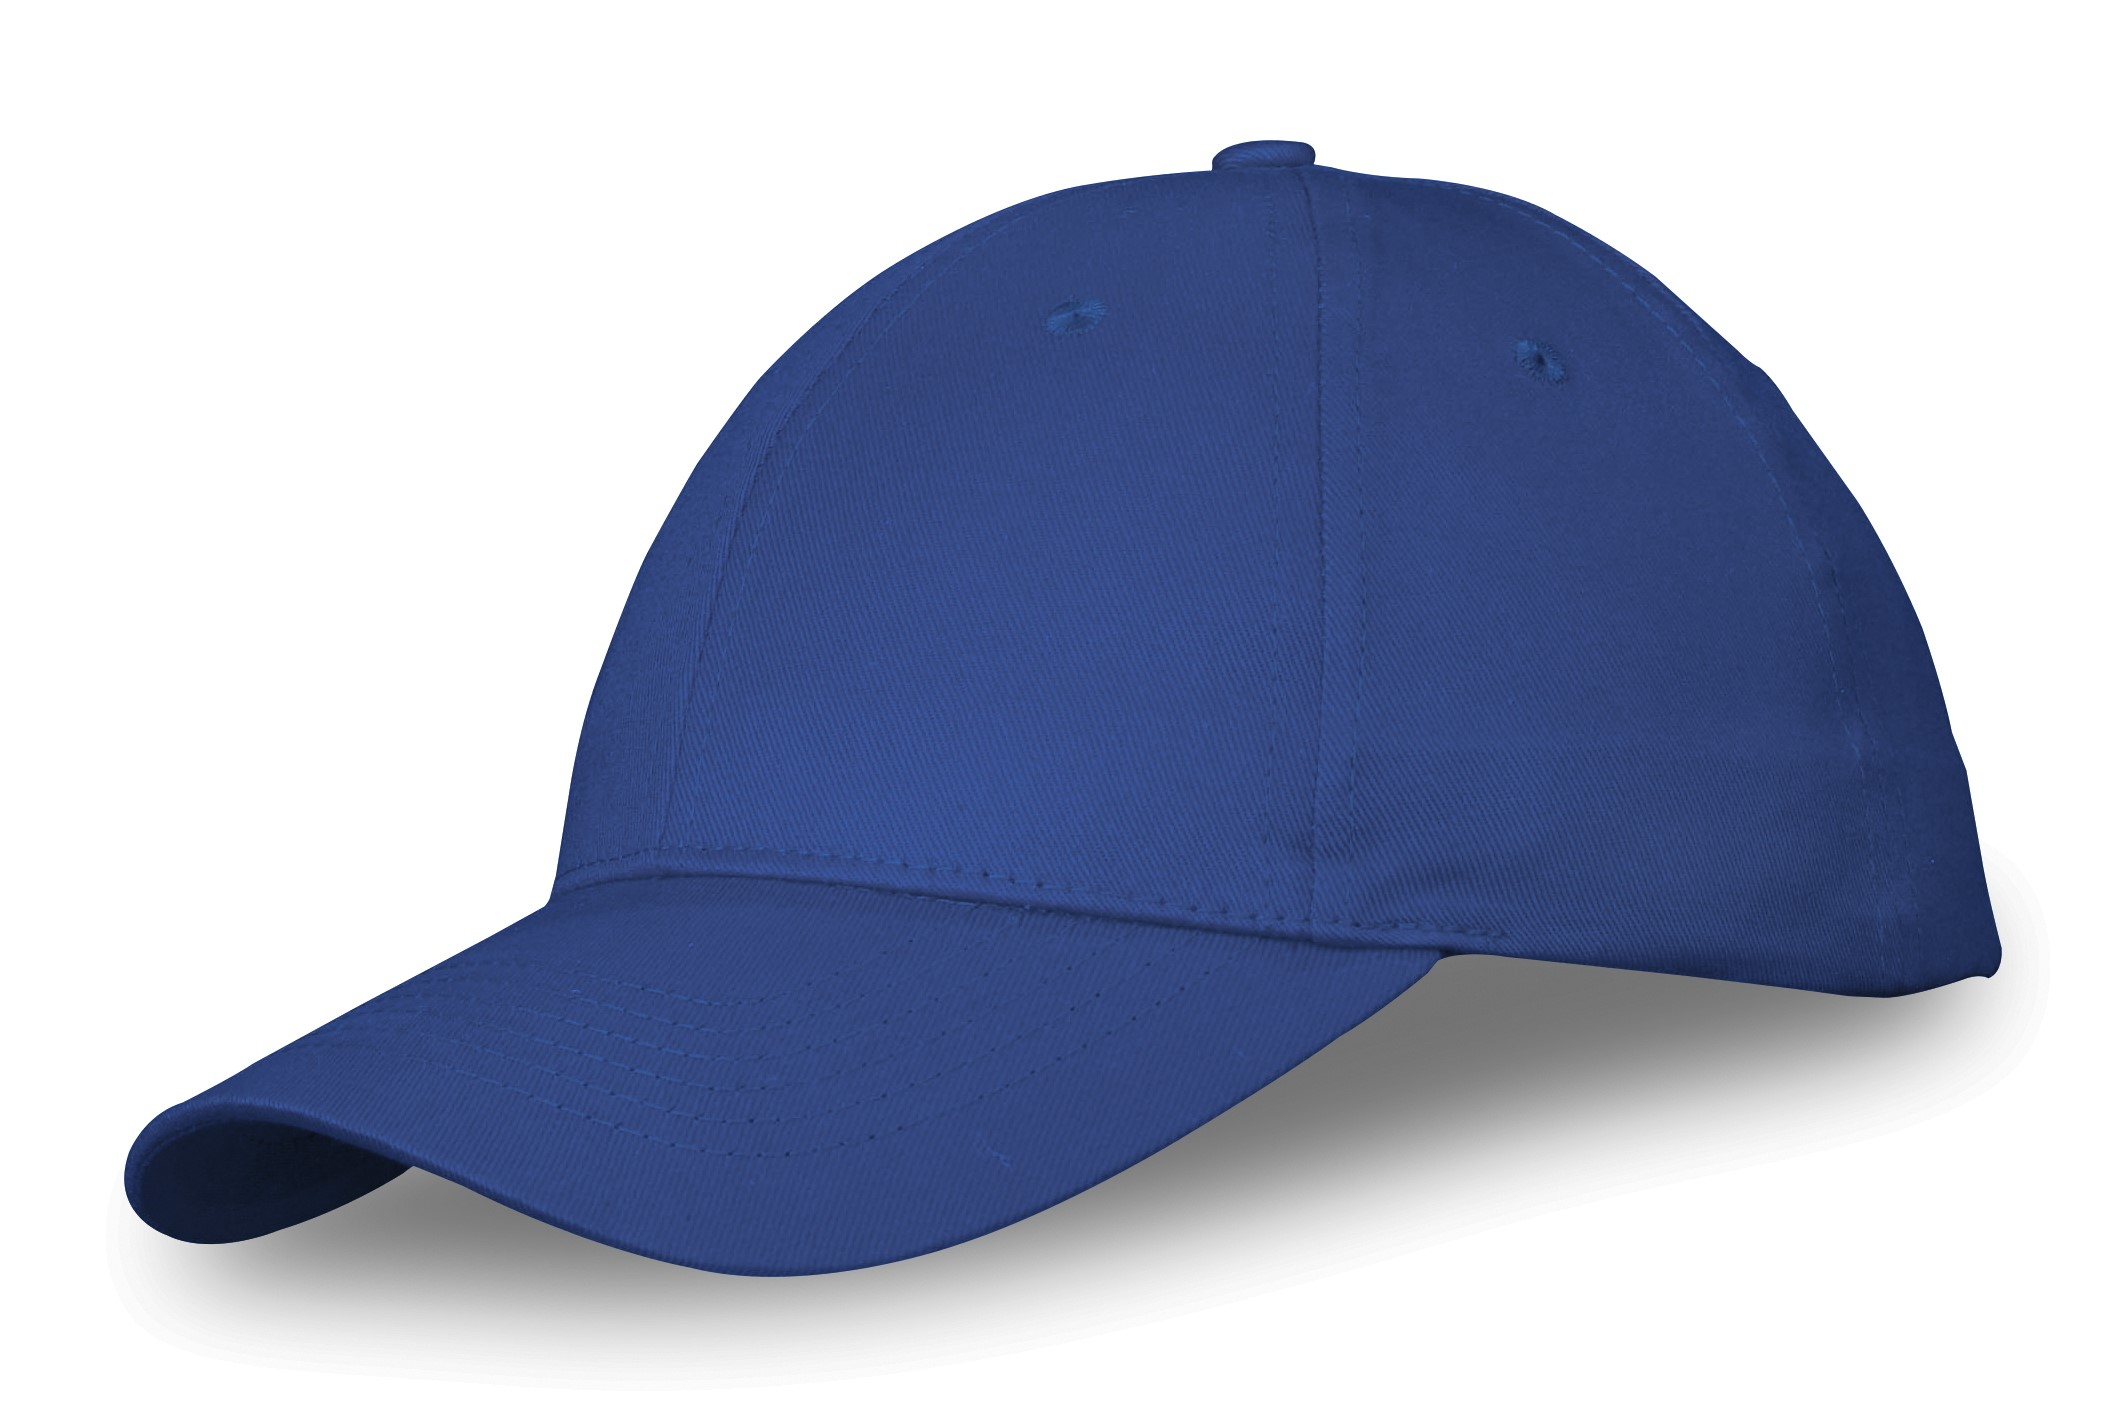 A twill cotton peak cap that can be branded on all six panel sections c5978b1a1eb